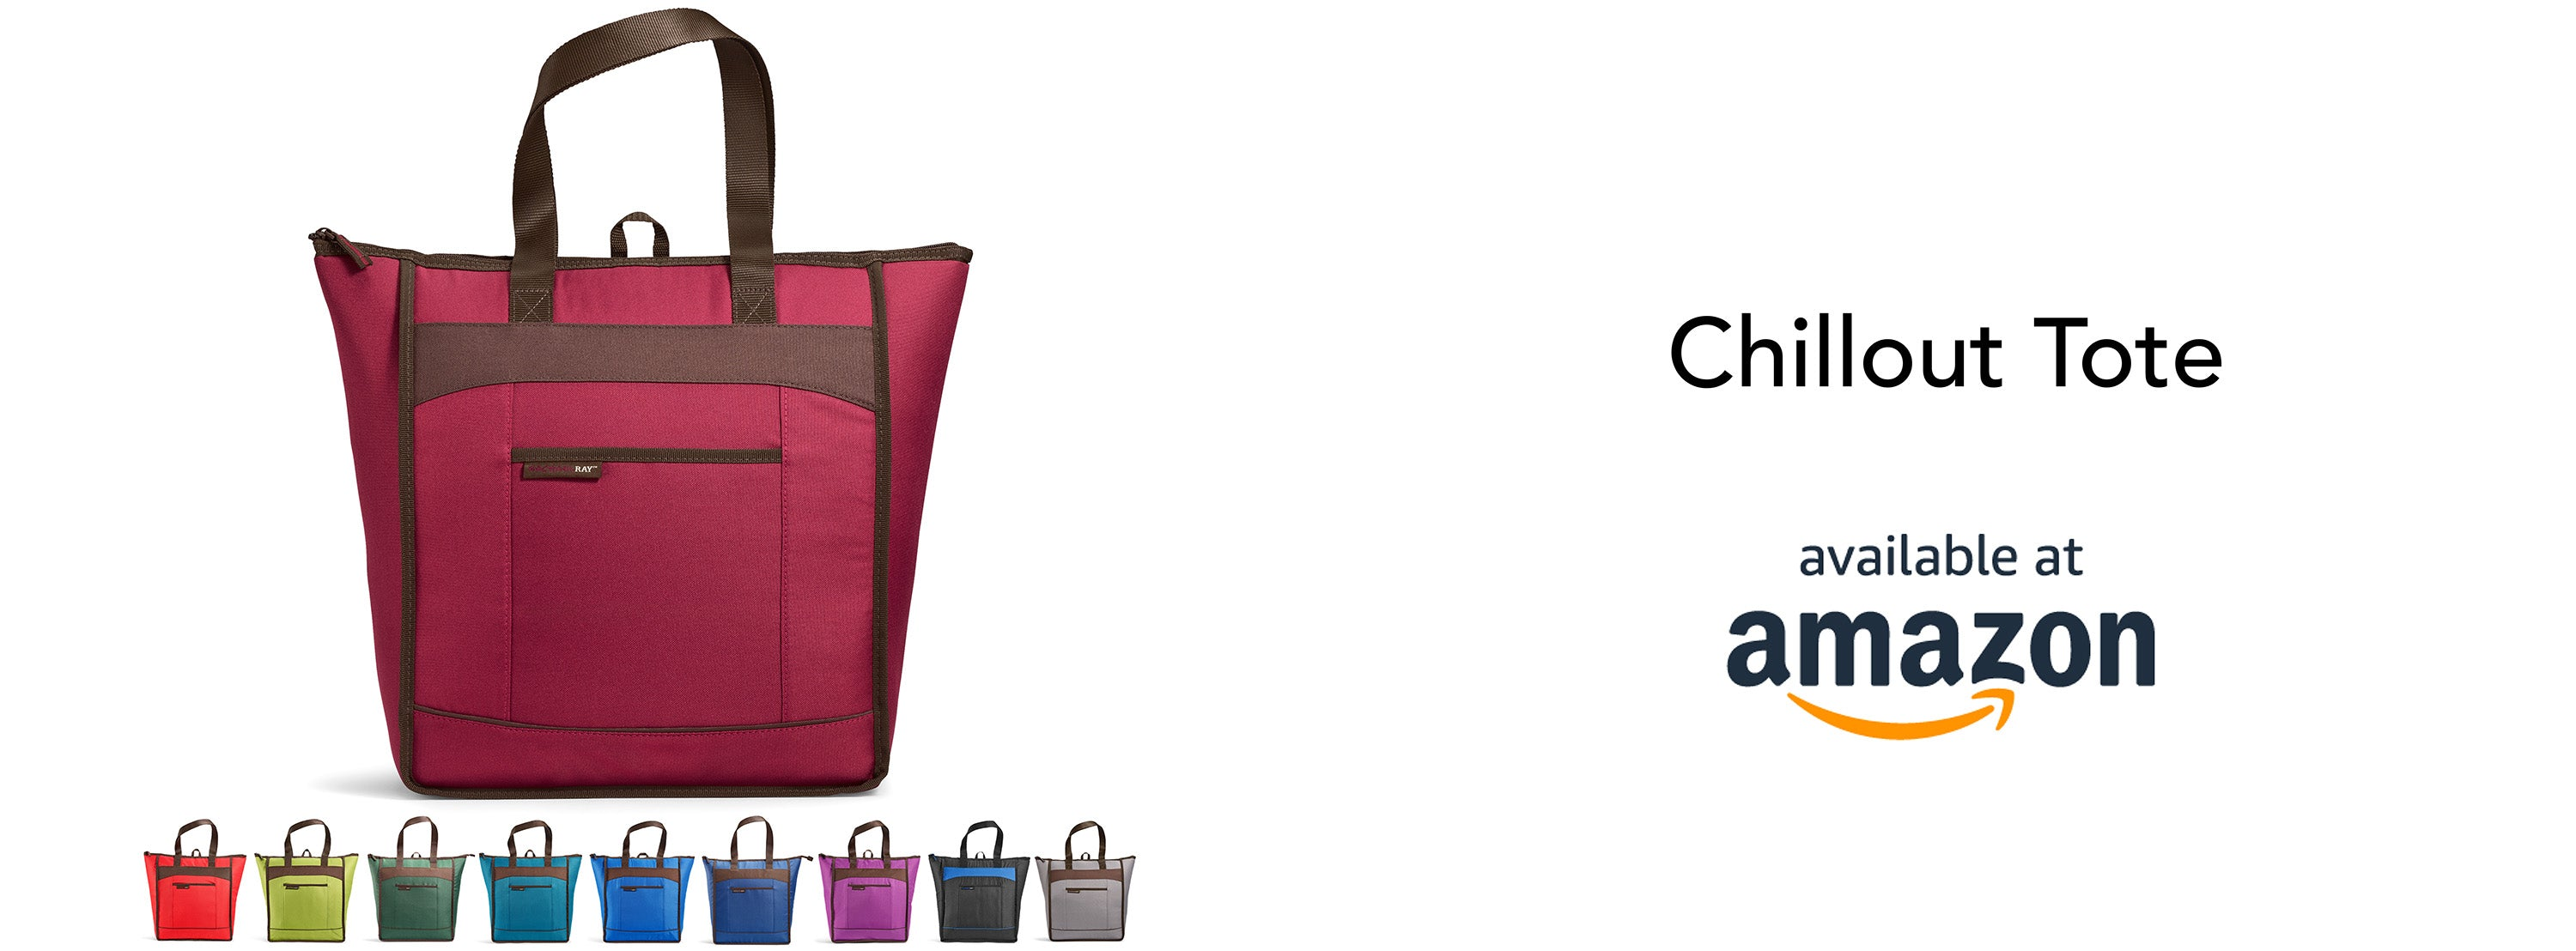 Rachael Ray Chillout Tote Burgundy available at Amazon